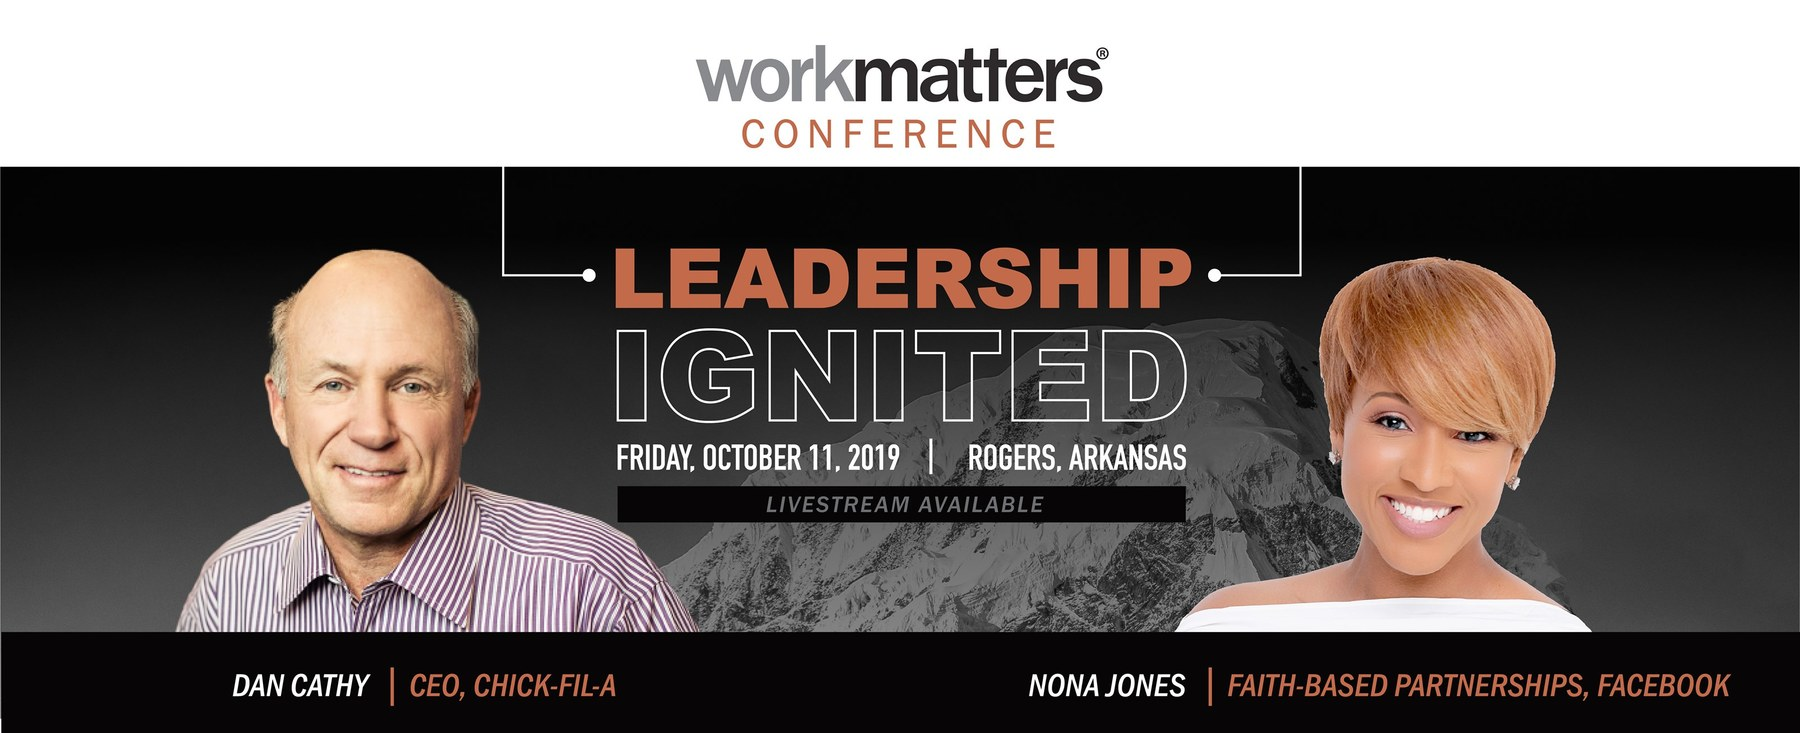 Chick-fil-A CEO, Dan Cathy, to Speak at Workmatters Conference